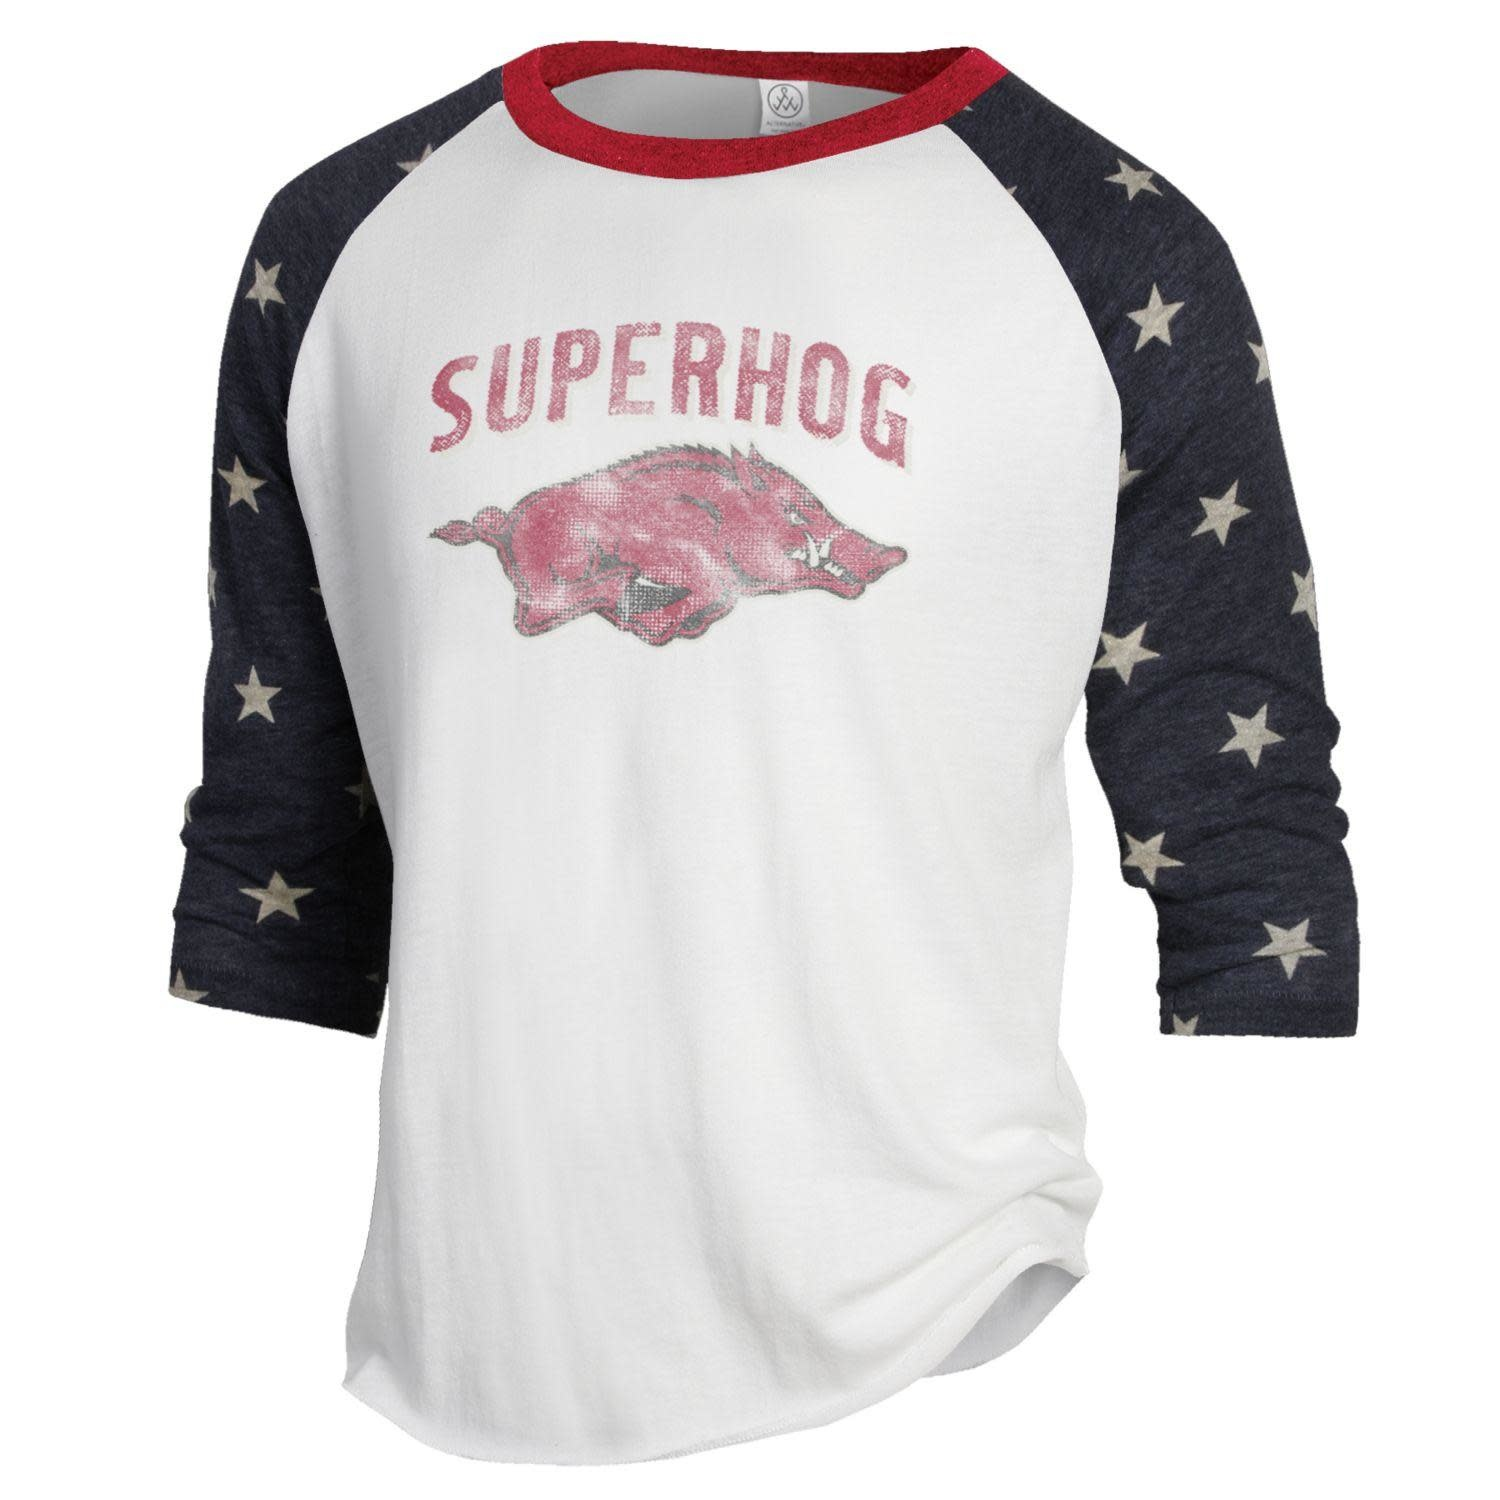 Alternative Arkansas Razorback Superhog Stars Baseball Tee